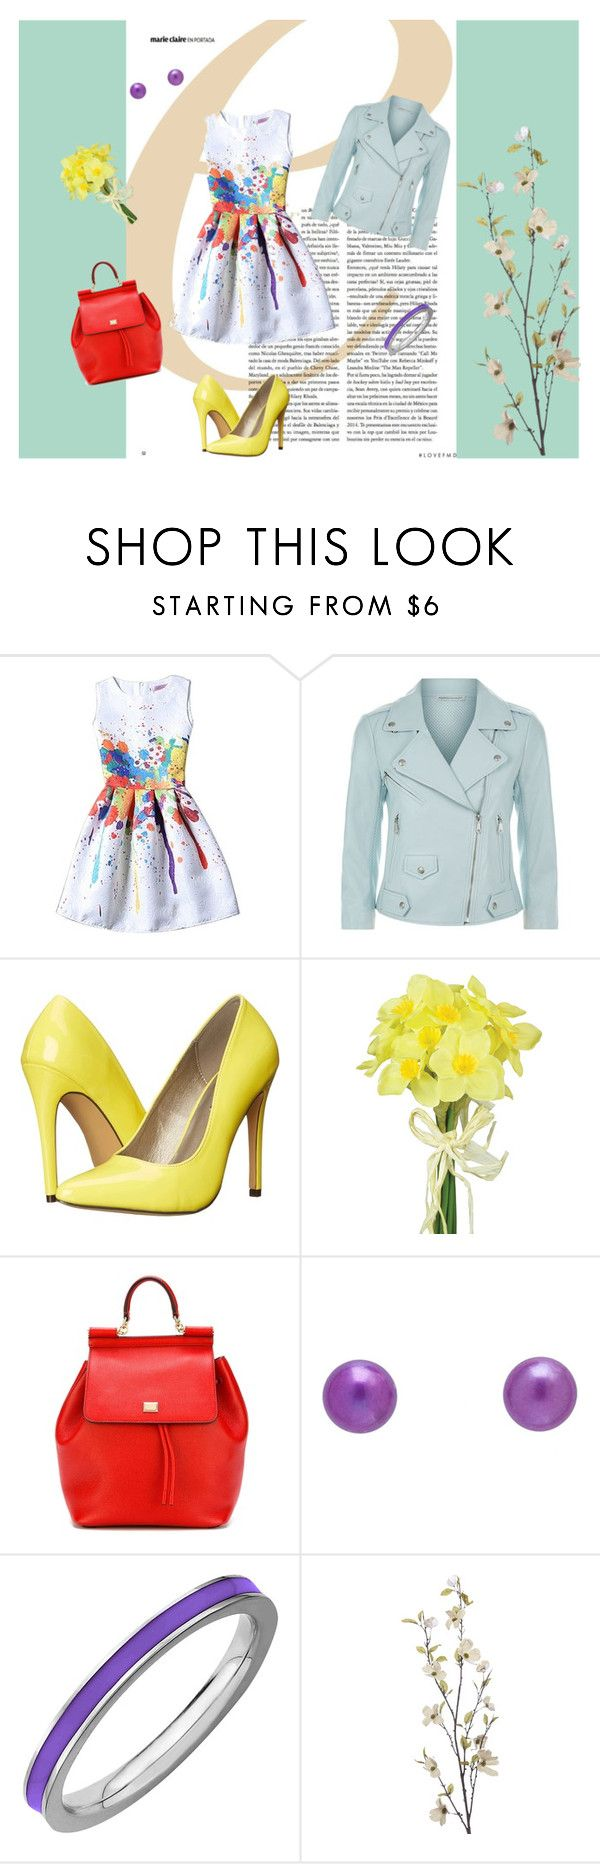 """Jaro je tady"" by vvejrkova on Polyvore featuring мода, Rebecca Minkoff, Michael Antonio, Pavilion Broadway, Dolce&Gabbana, Don't AsK и Pier 1 Imports"